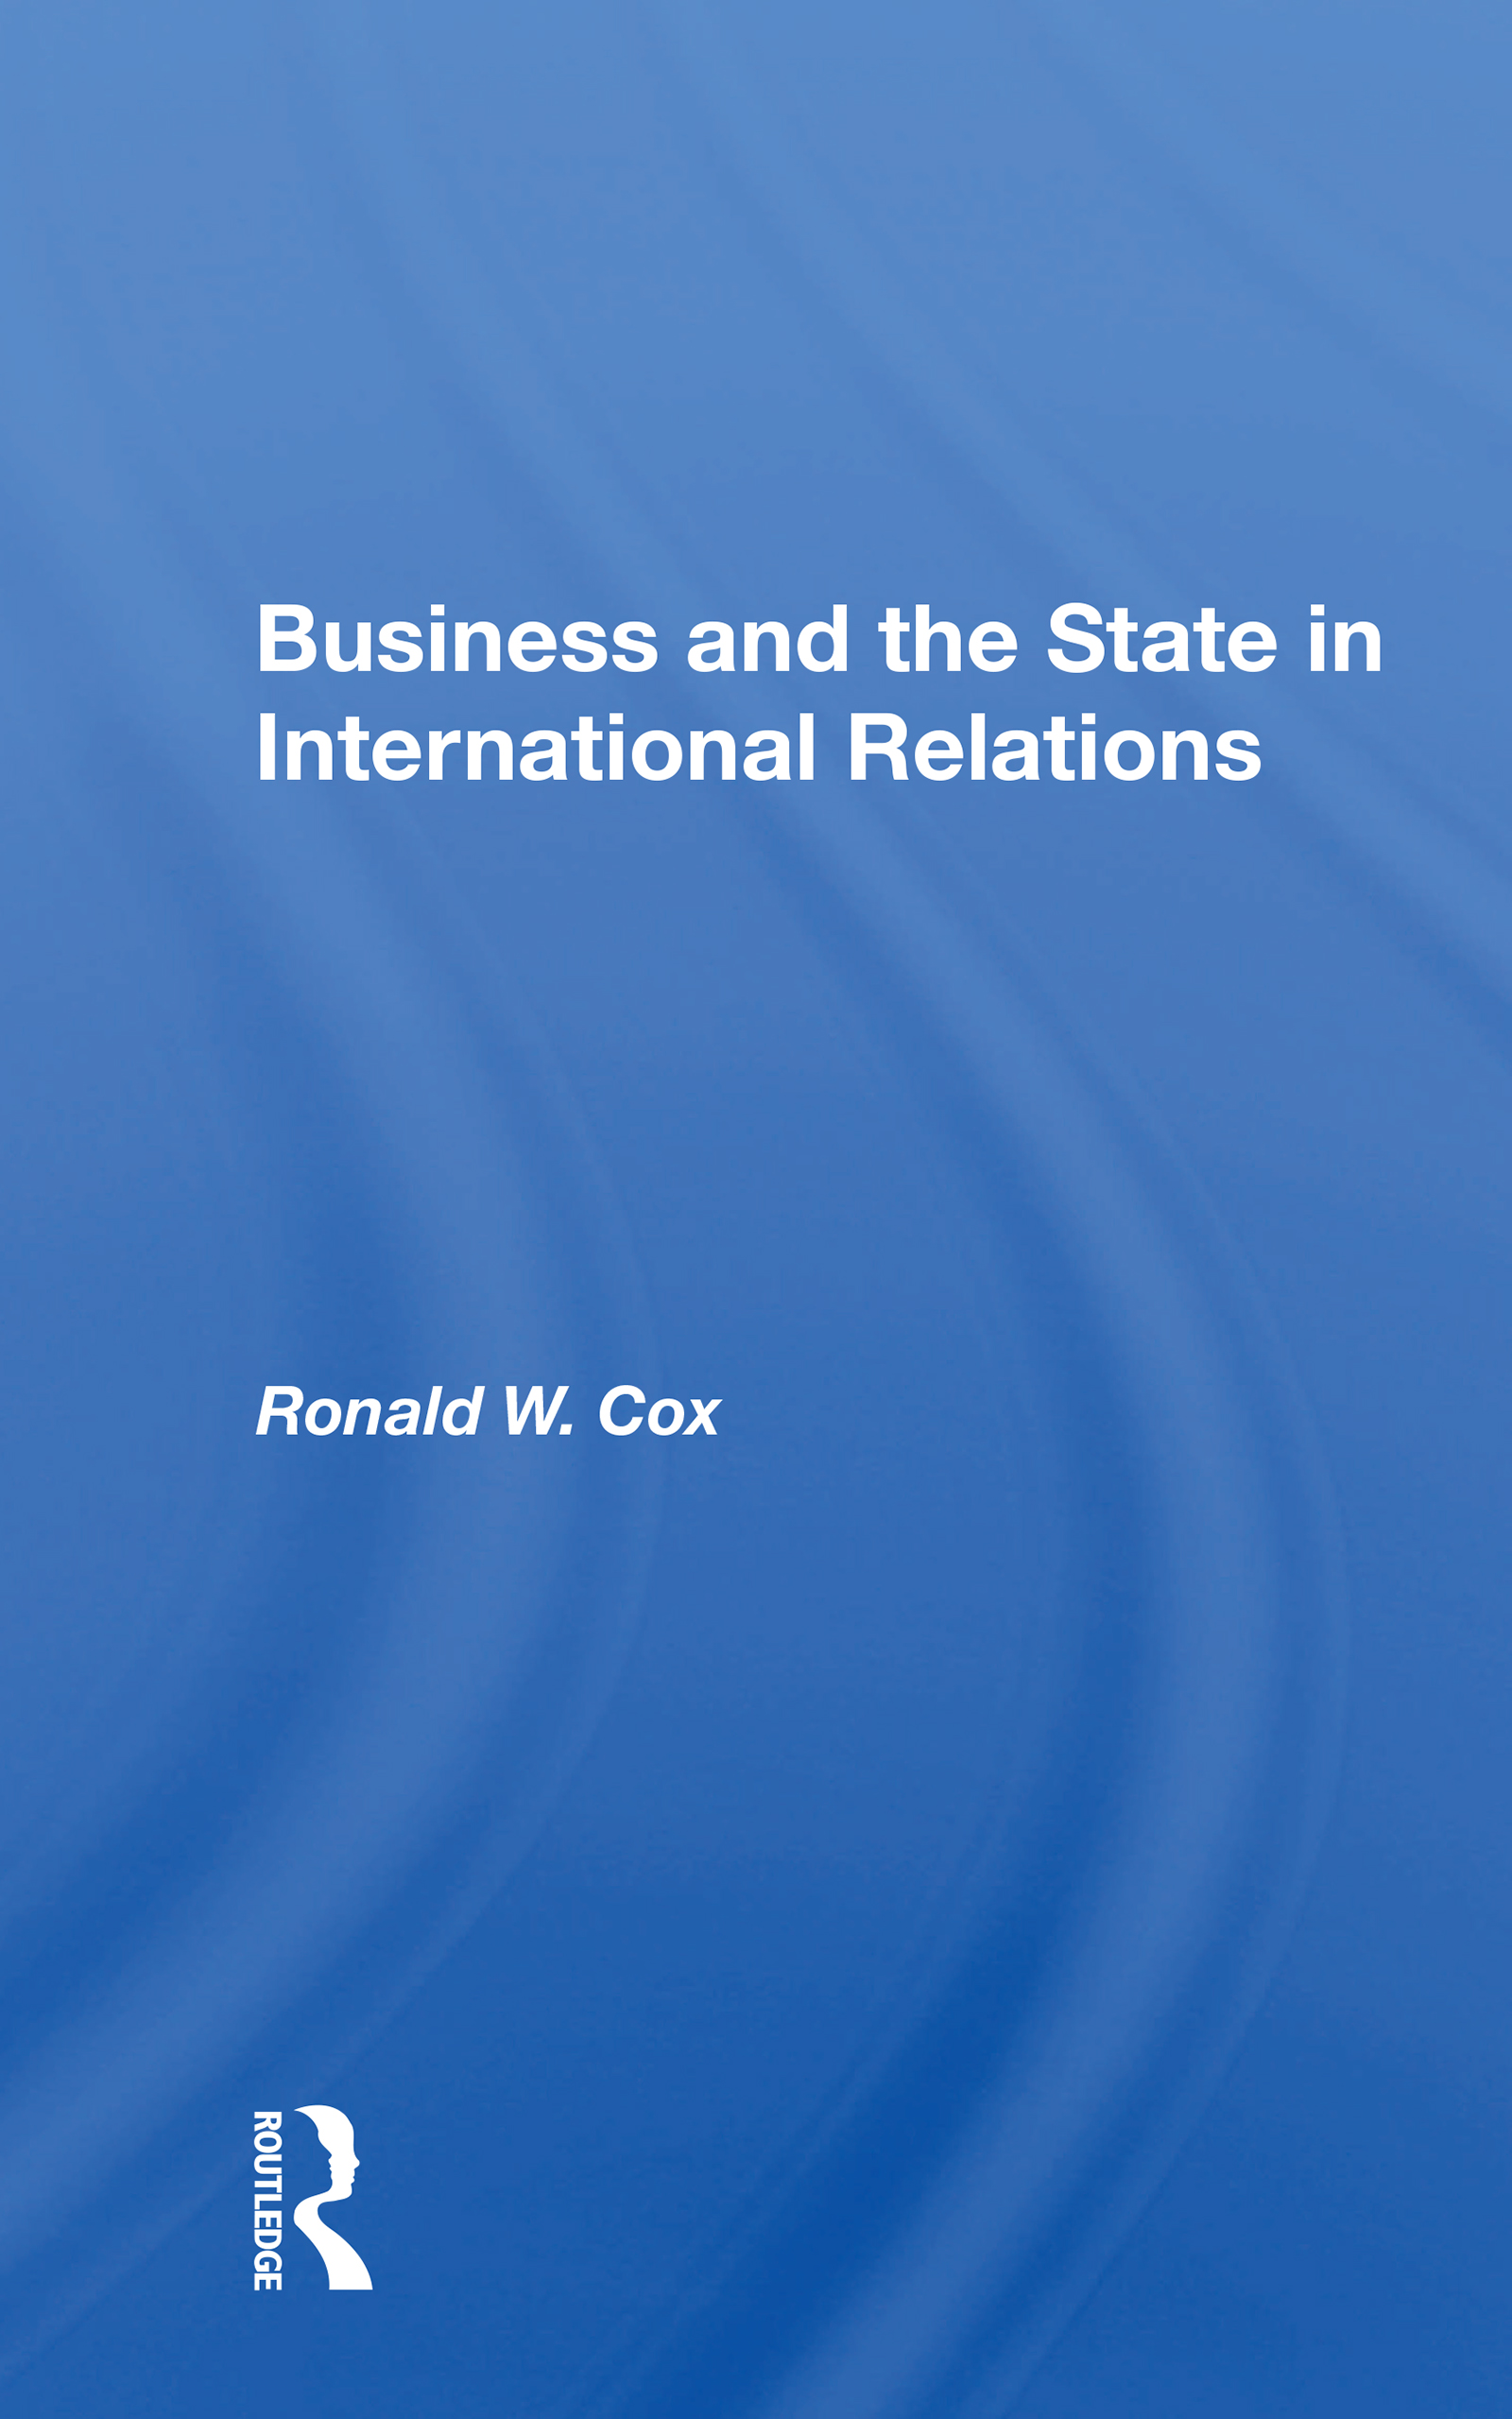 Business Mobilization and the New Right: Currents in U.S. Foreign Policy